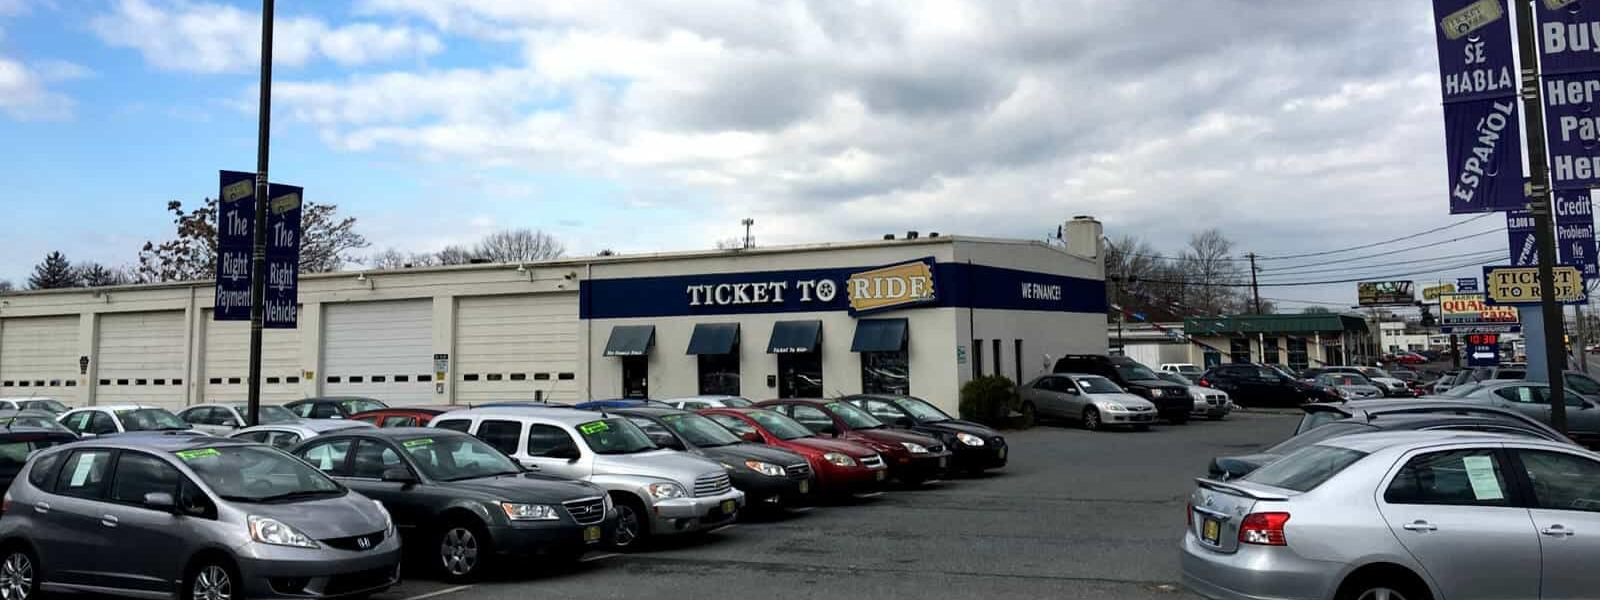 Your Ticket To Ride Used Cars Lancaster Pa Bad Credit Car Loans